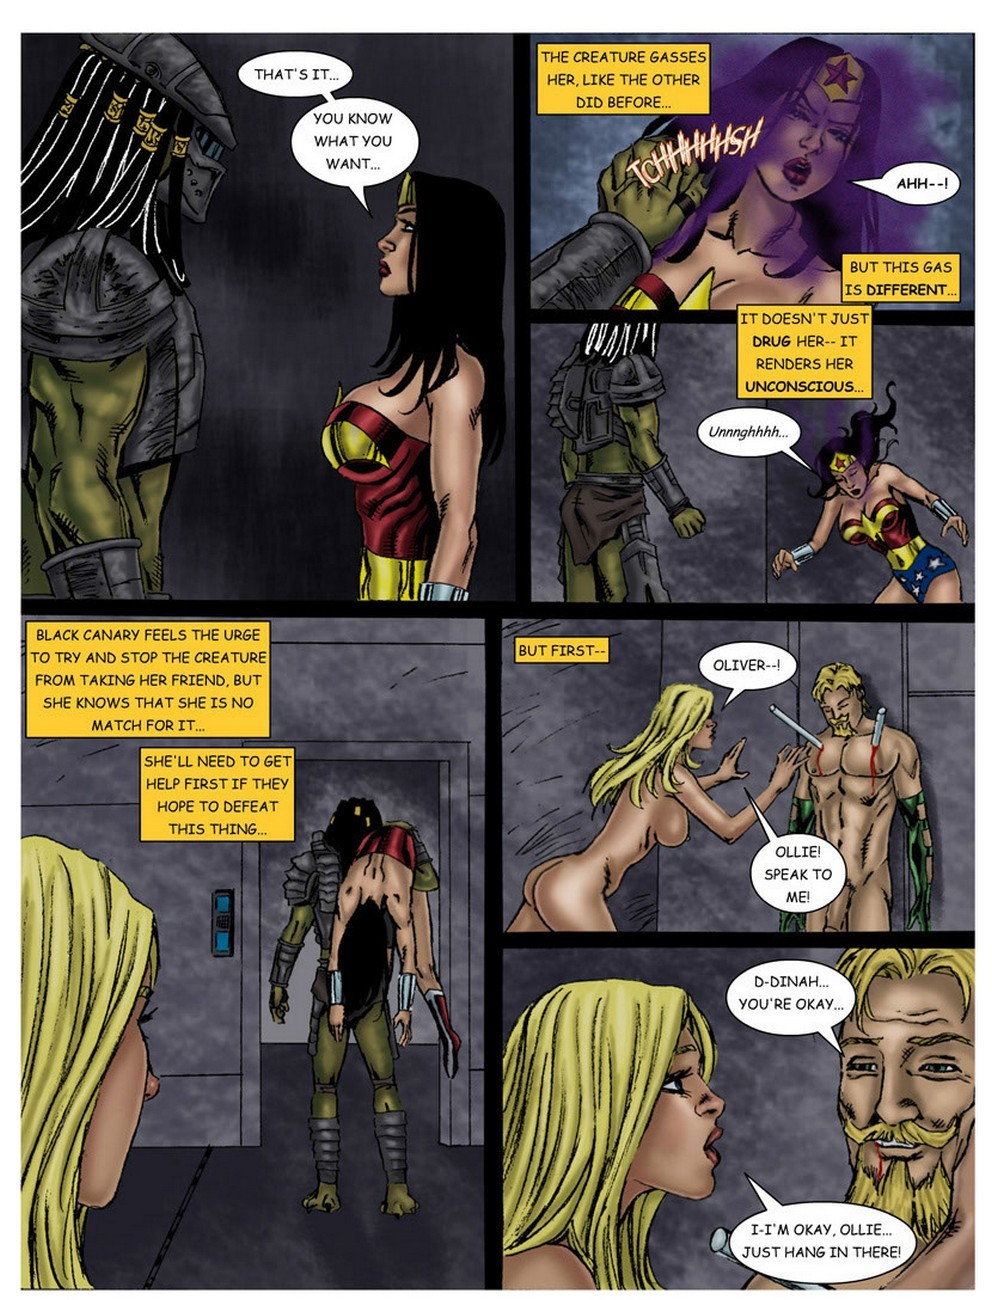 Wonder Woman - In The Clutches Of The Predator 3 15 free sex comic